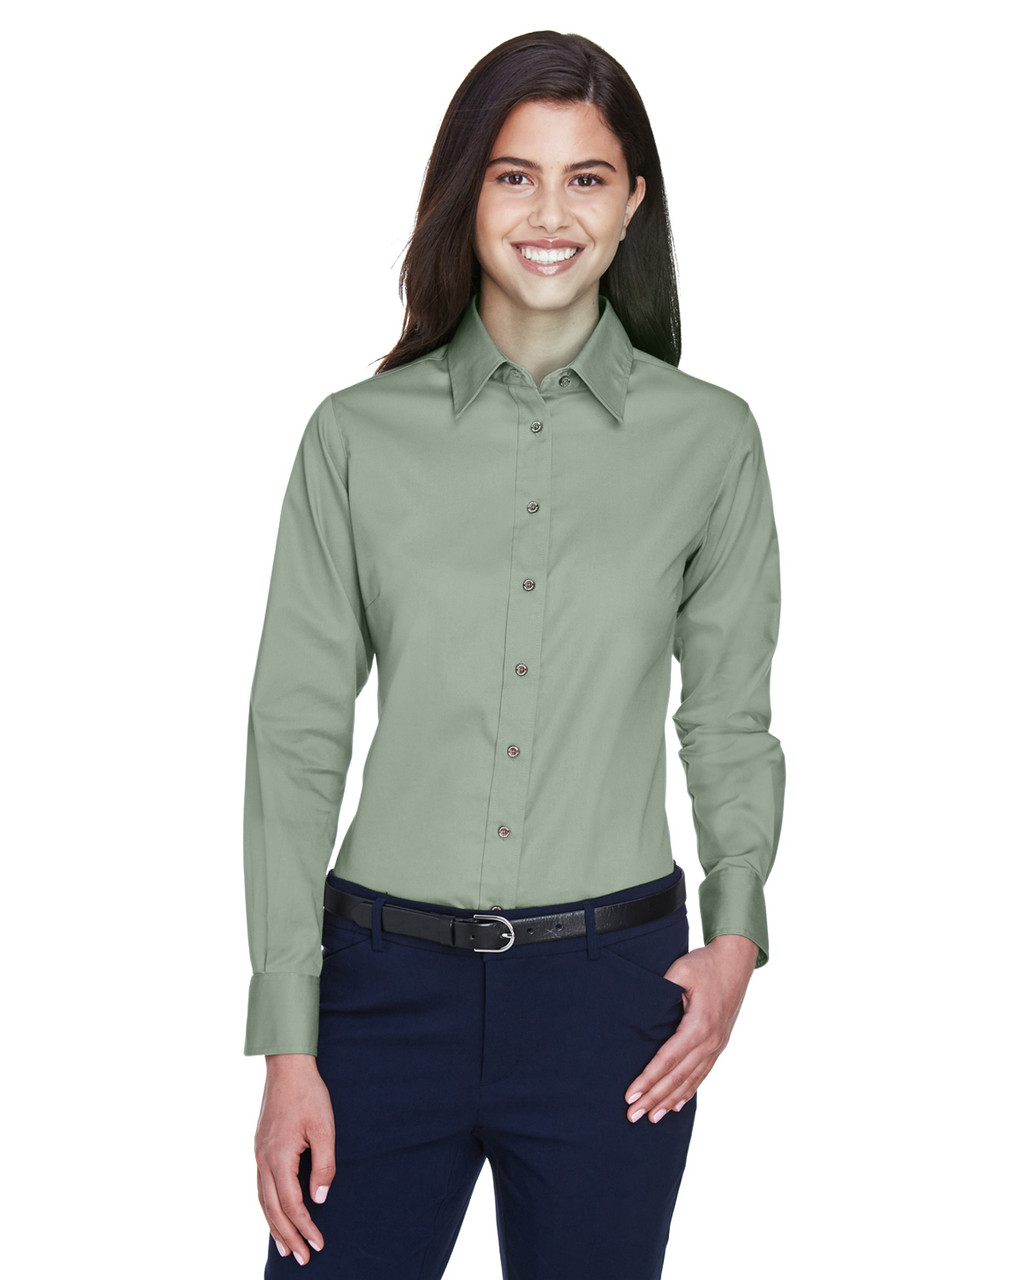 Dill - M500W Harriton Easy Blend Long-Sleeve Twill Shirt with Stain-Release | BlankClothing.ca